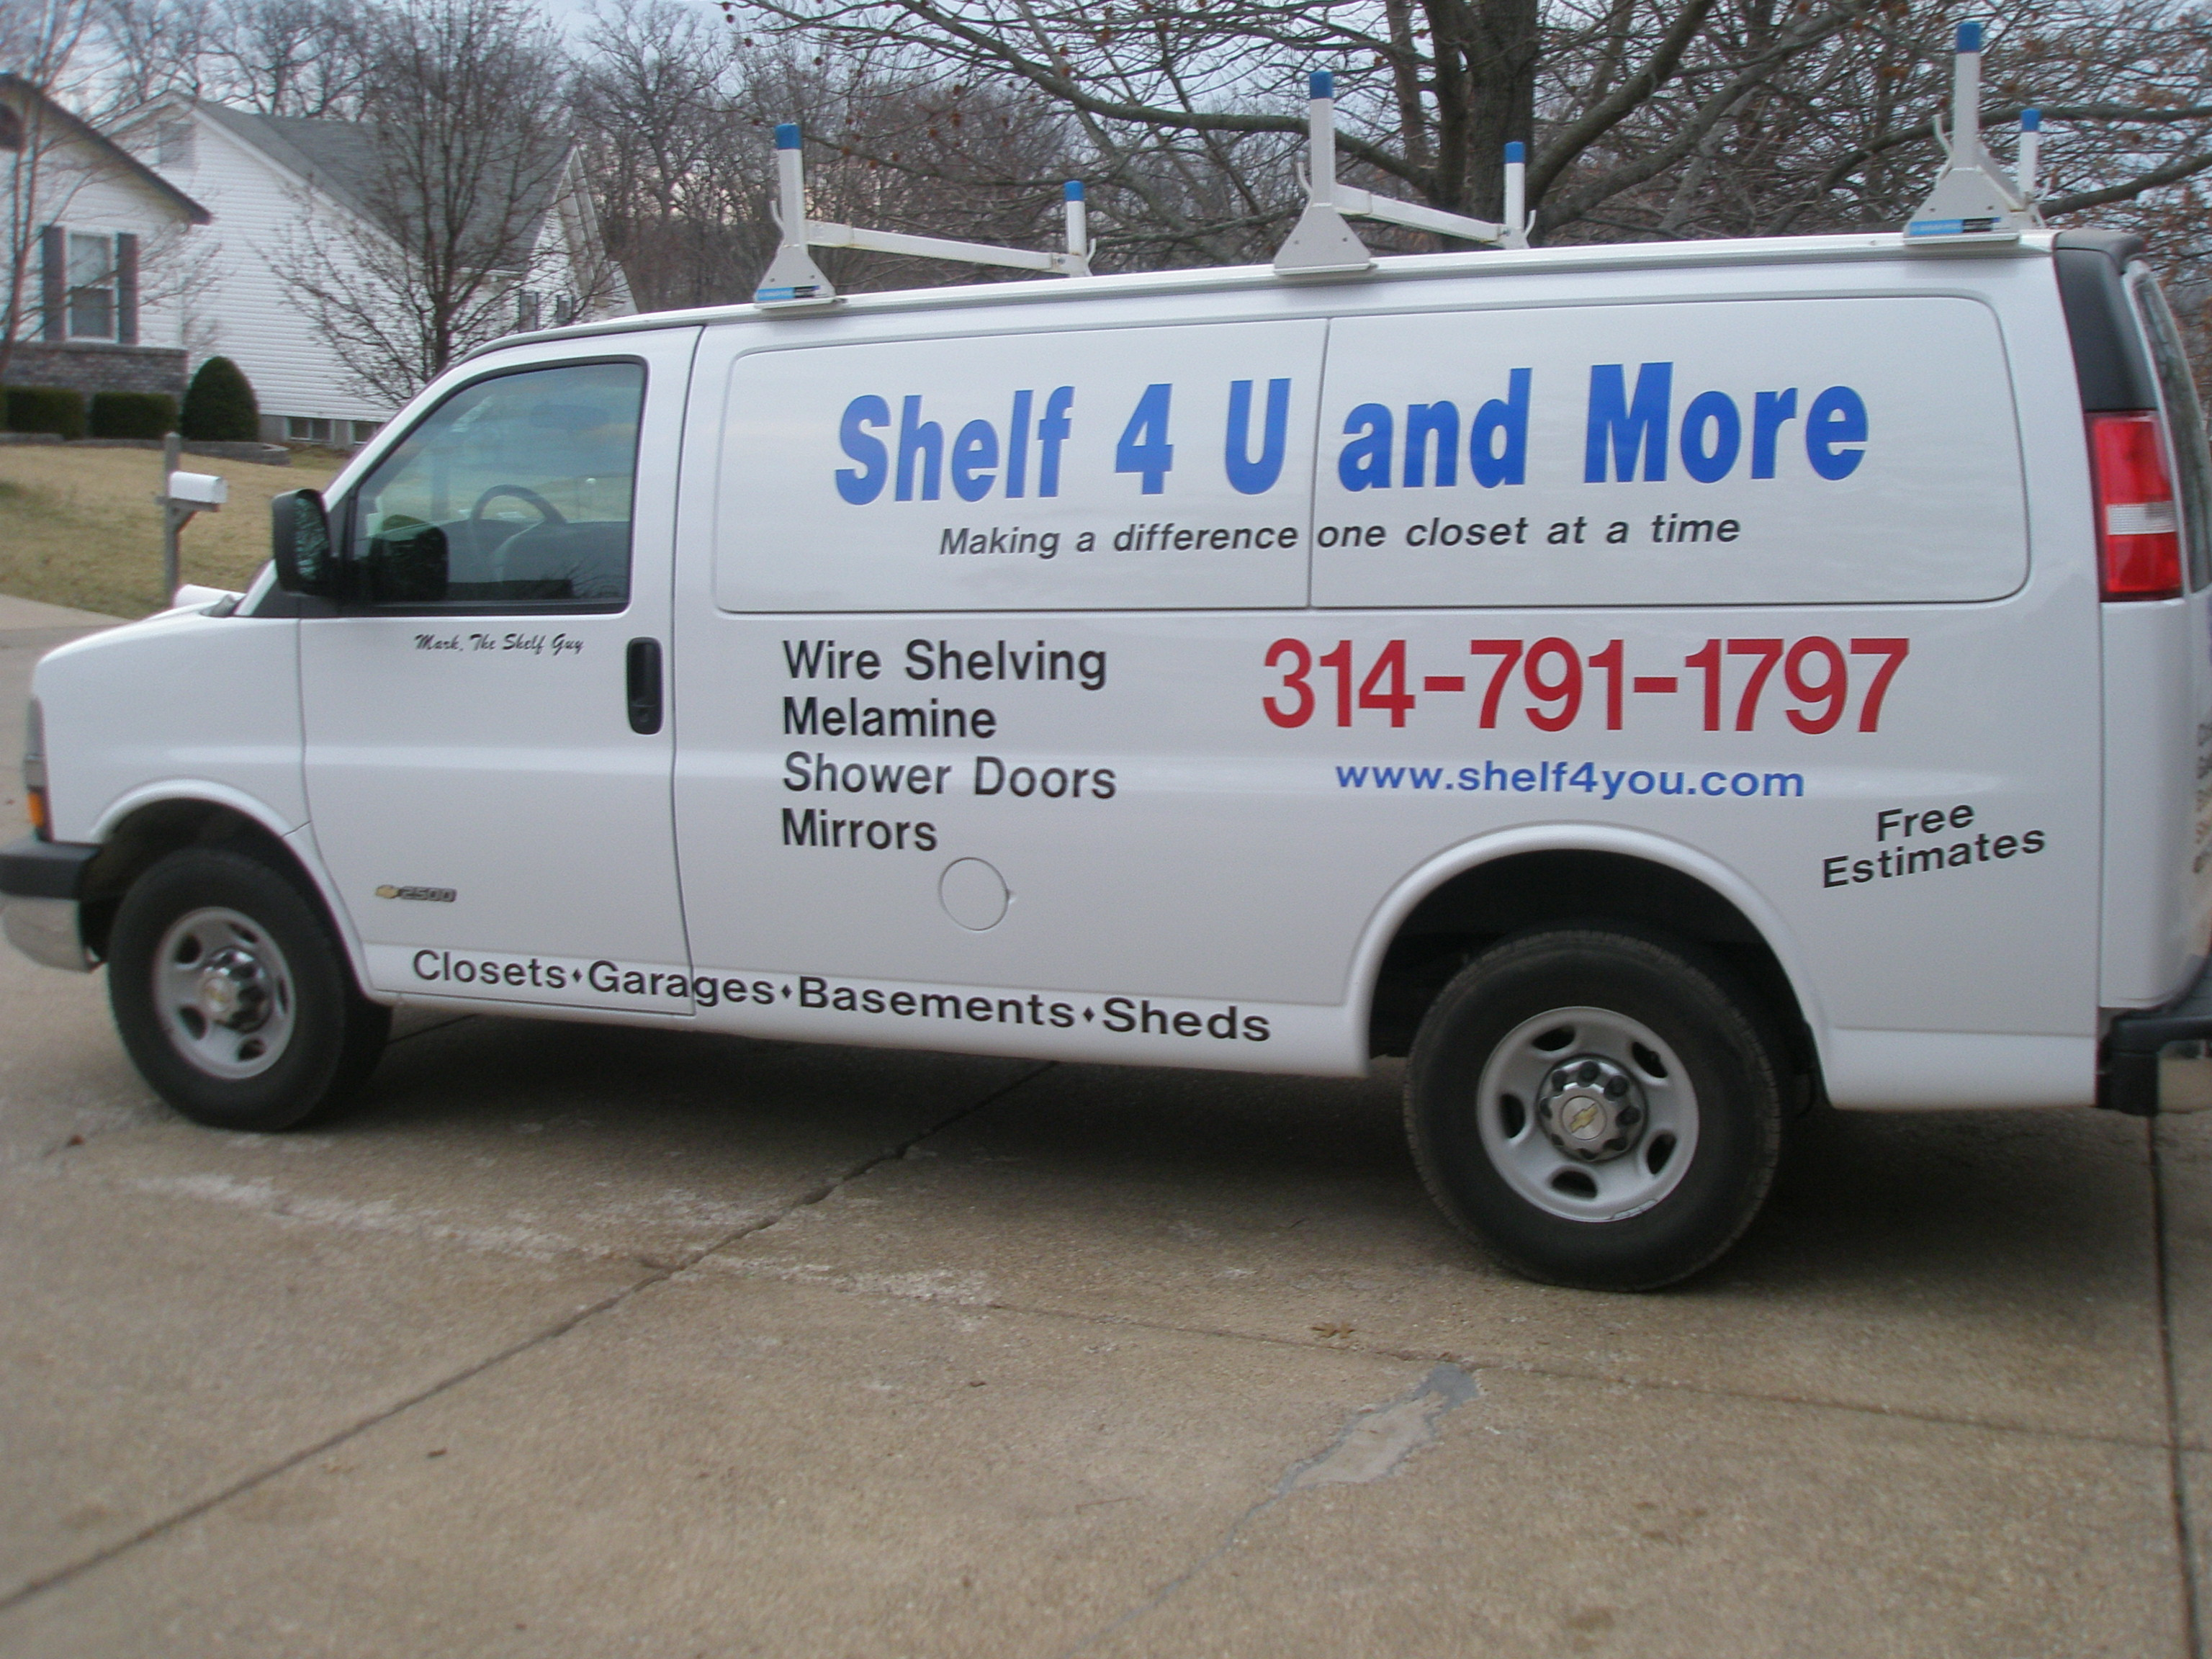 Keep an eye out for this Van.